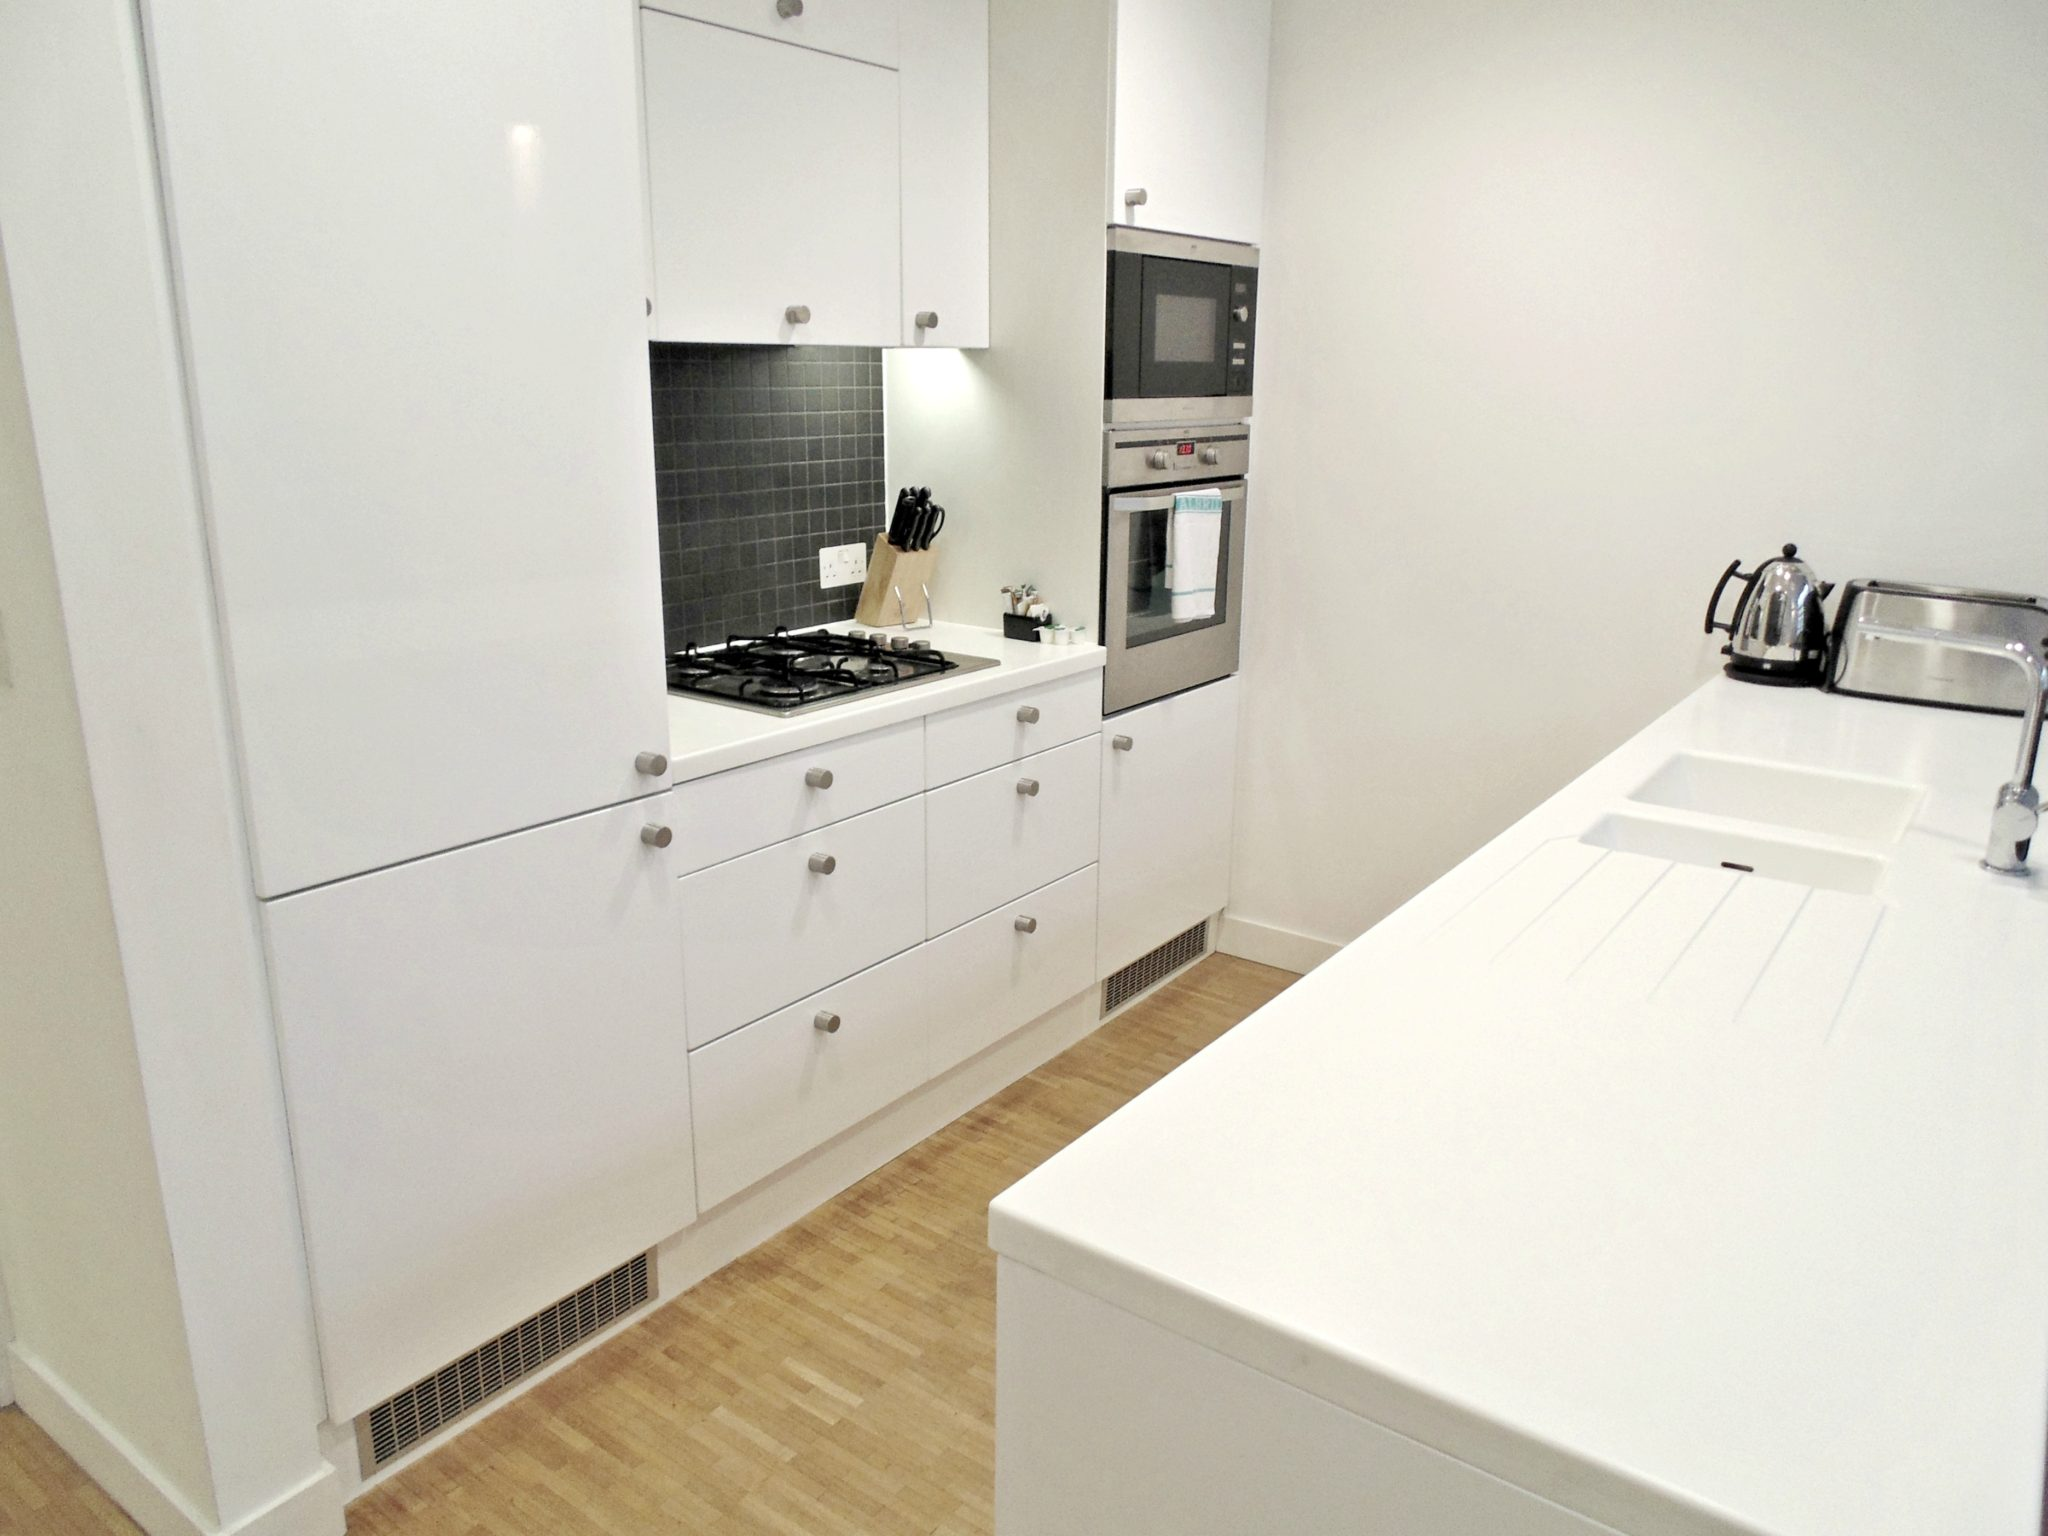 Serviced-Accommodation-Farringdon-|-Serviced-Apartments-Near-Chancery-Lane,-Clerkenwell,-Barbican-|-London-City-Short-Let-Apartments-|-BEST-RATES---BOOK-NOW-|-Urban-Stay